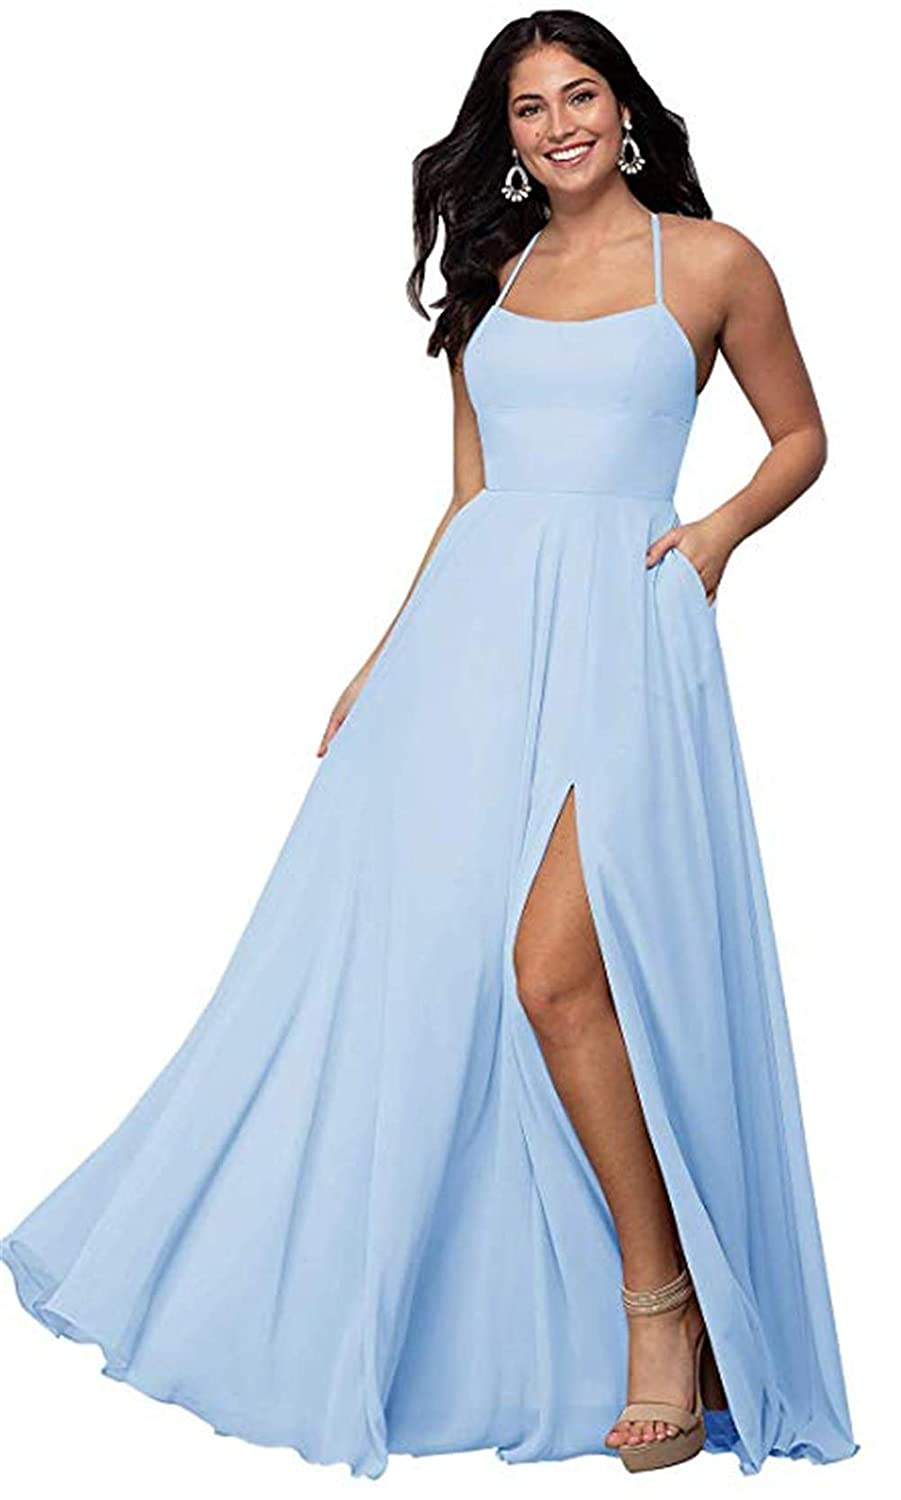 Baby bluee Halter A Line Long Bridesmaid Dresses Split Prom Evening Gowns with Pocket